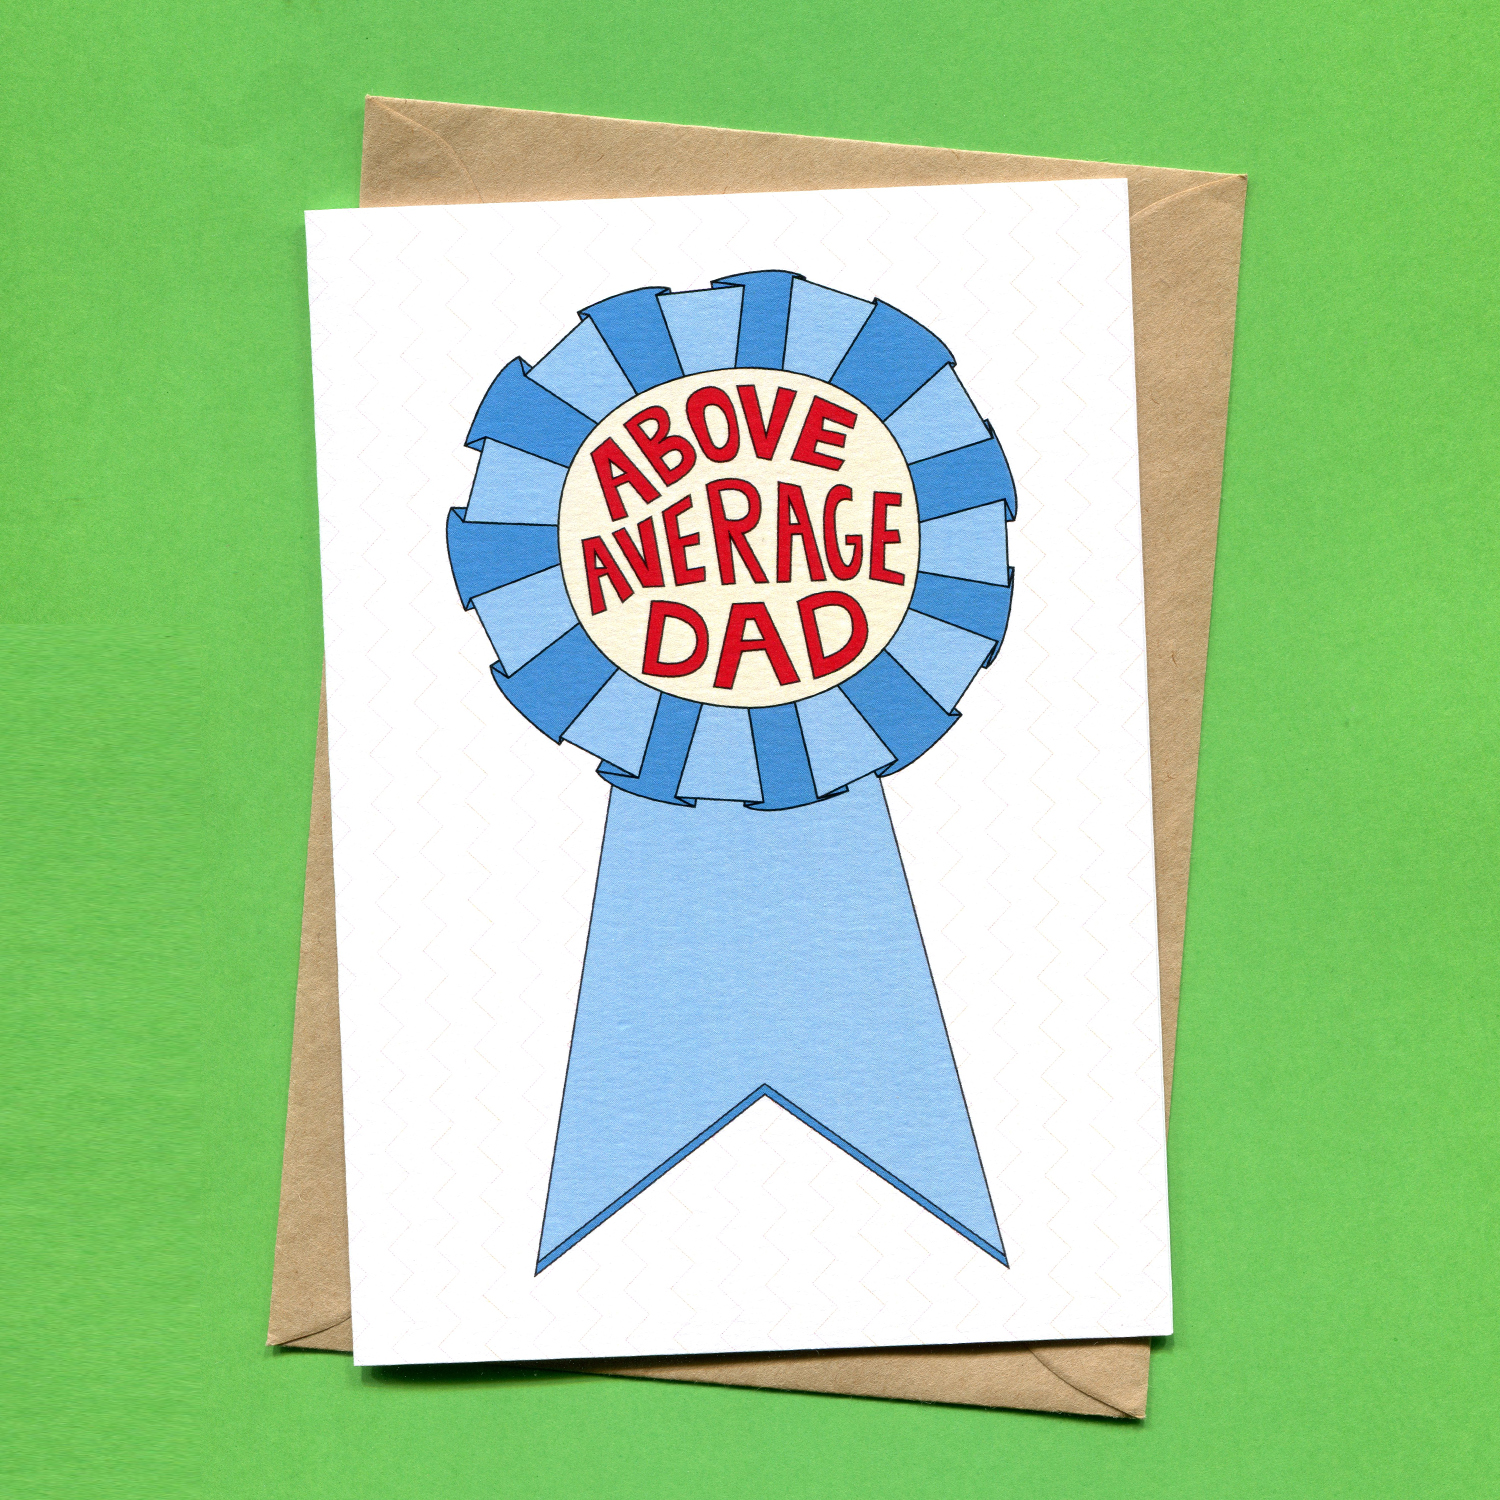 Catalogue_Things by Bean Above Average Dad Funny Ribbon Fathers Day Card.jpg